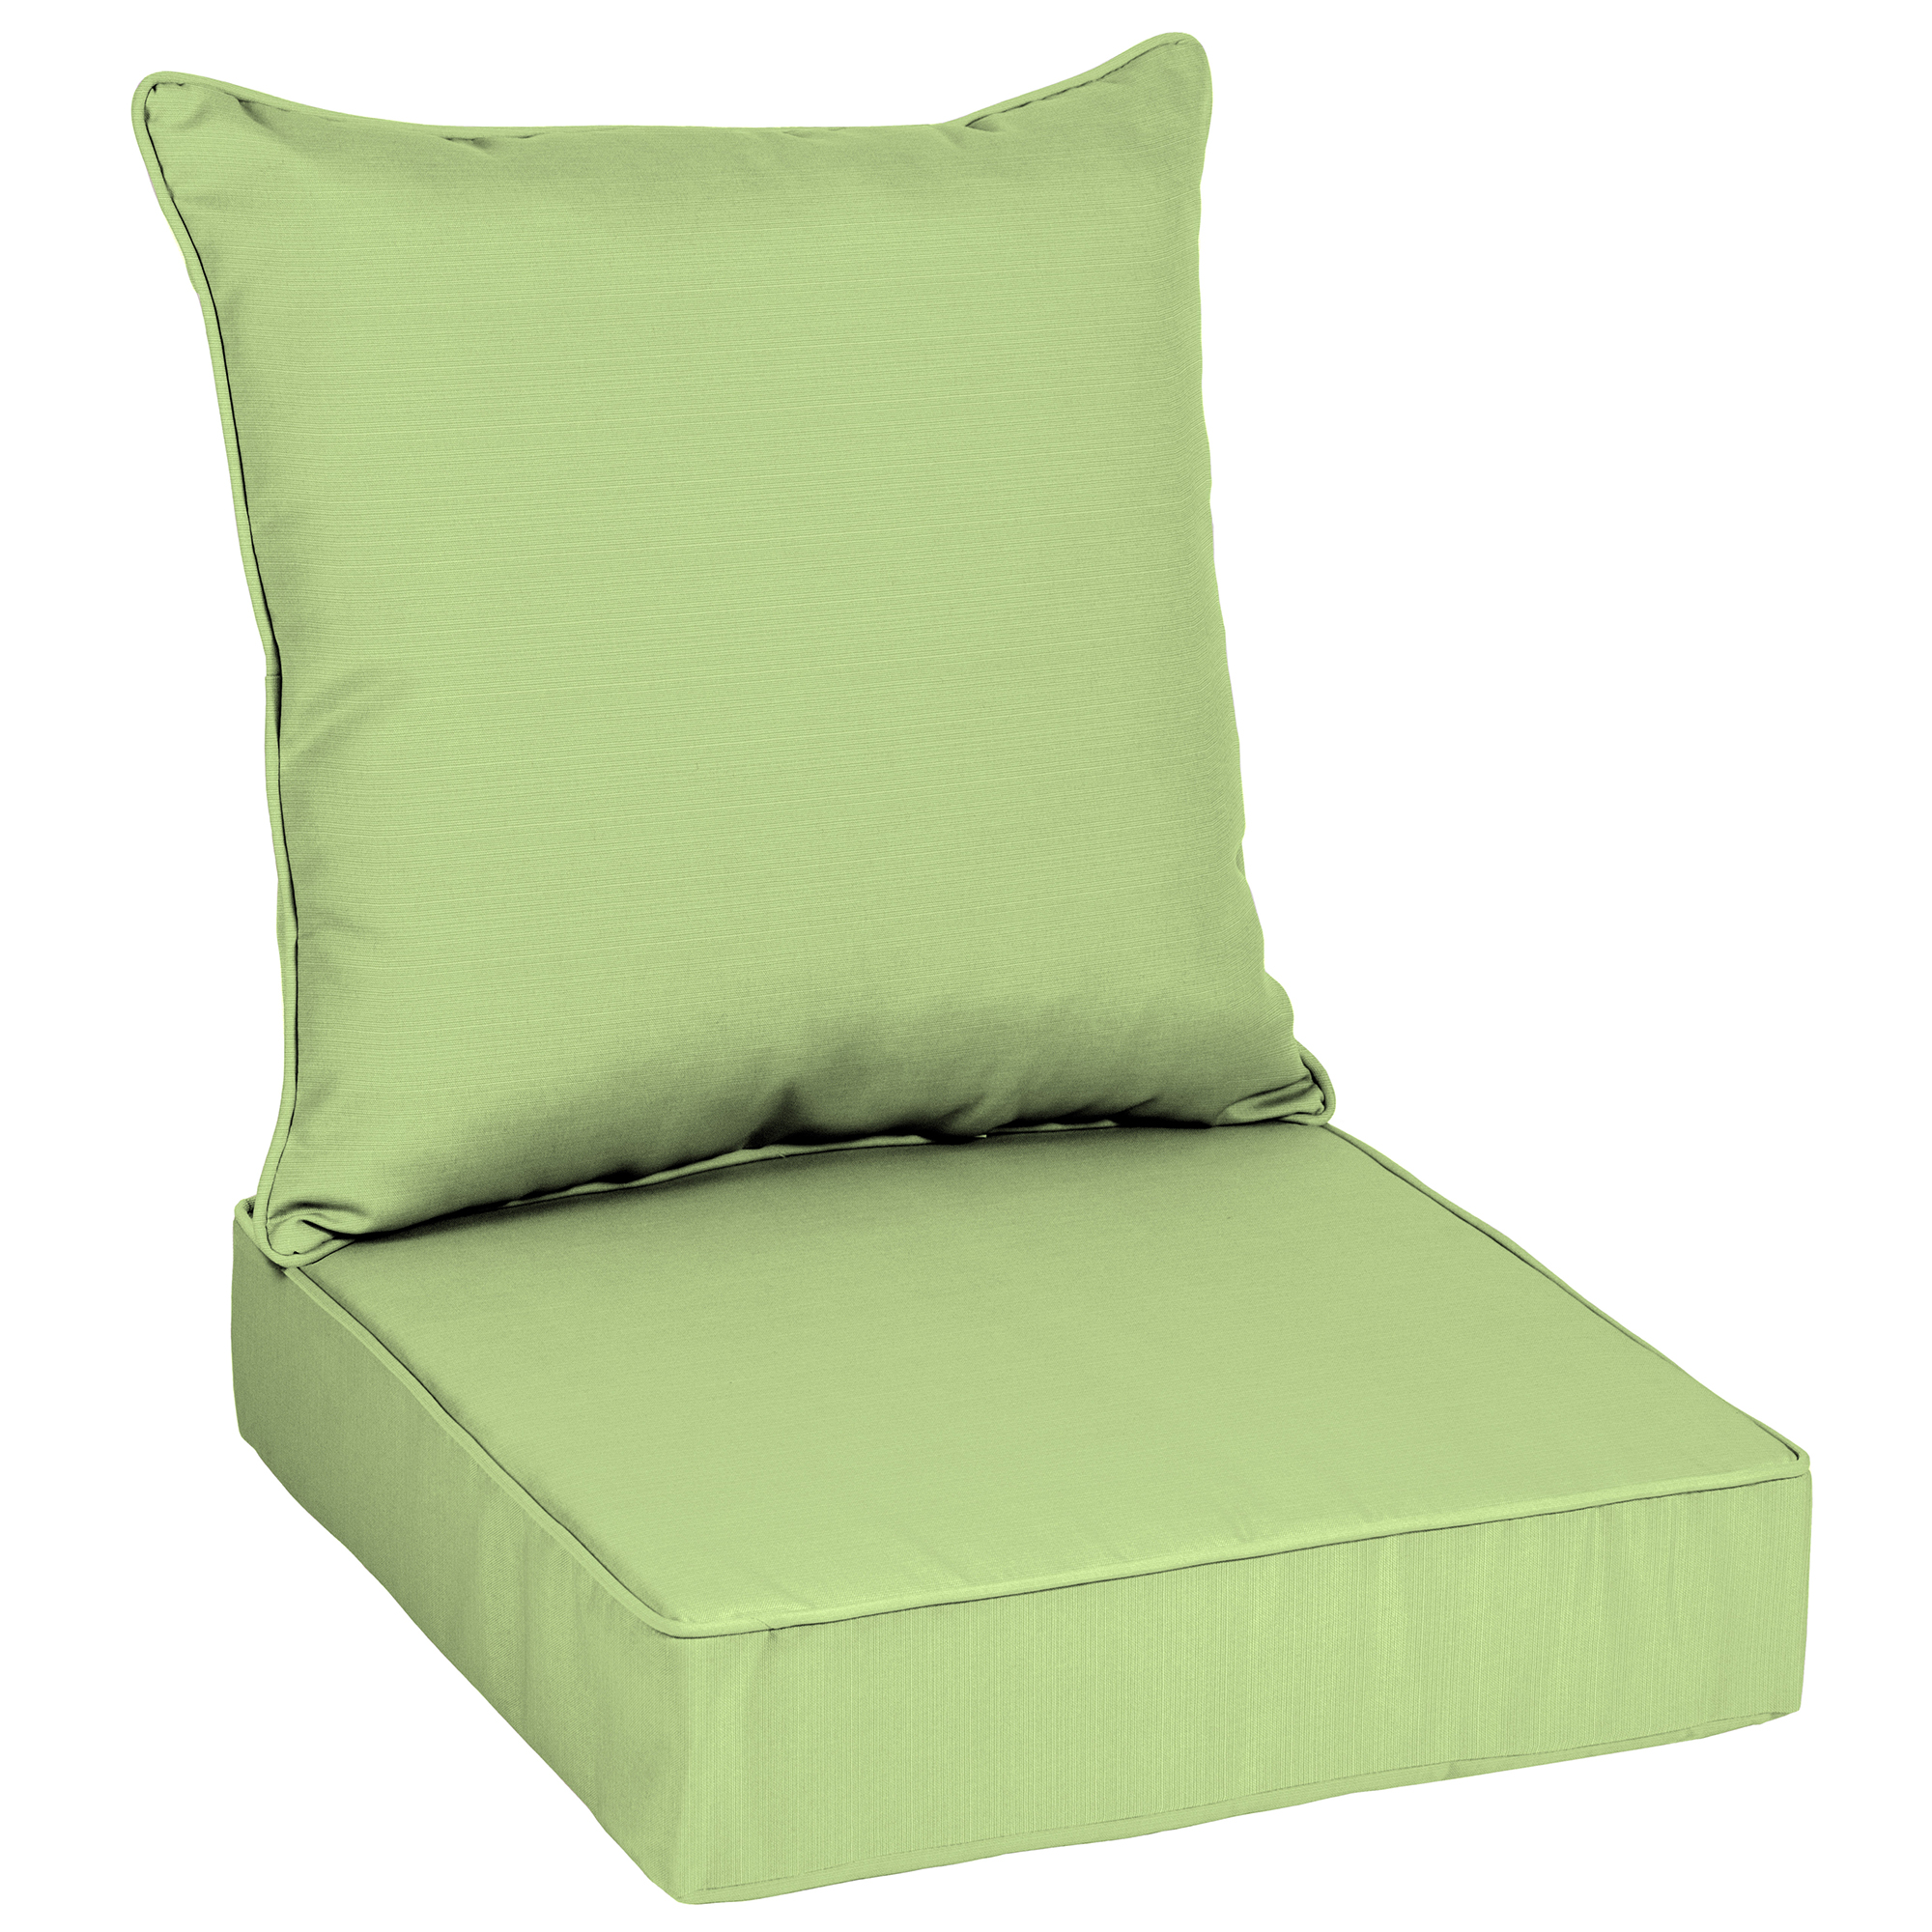 Beau Product Image Better Homes U0026 Gardens Mint Sage 48 X 24 In. Outdoor Deep  Seat Cushion Set